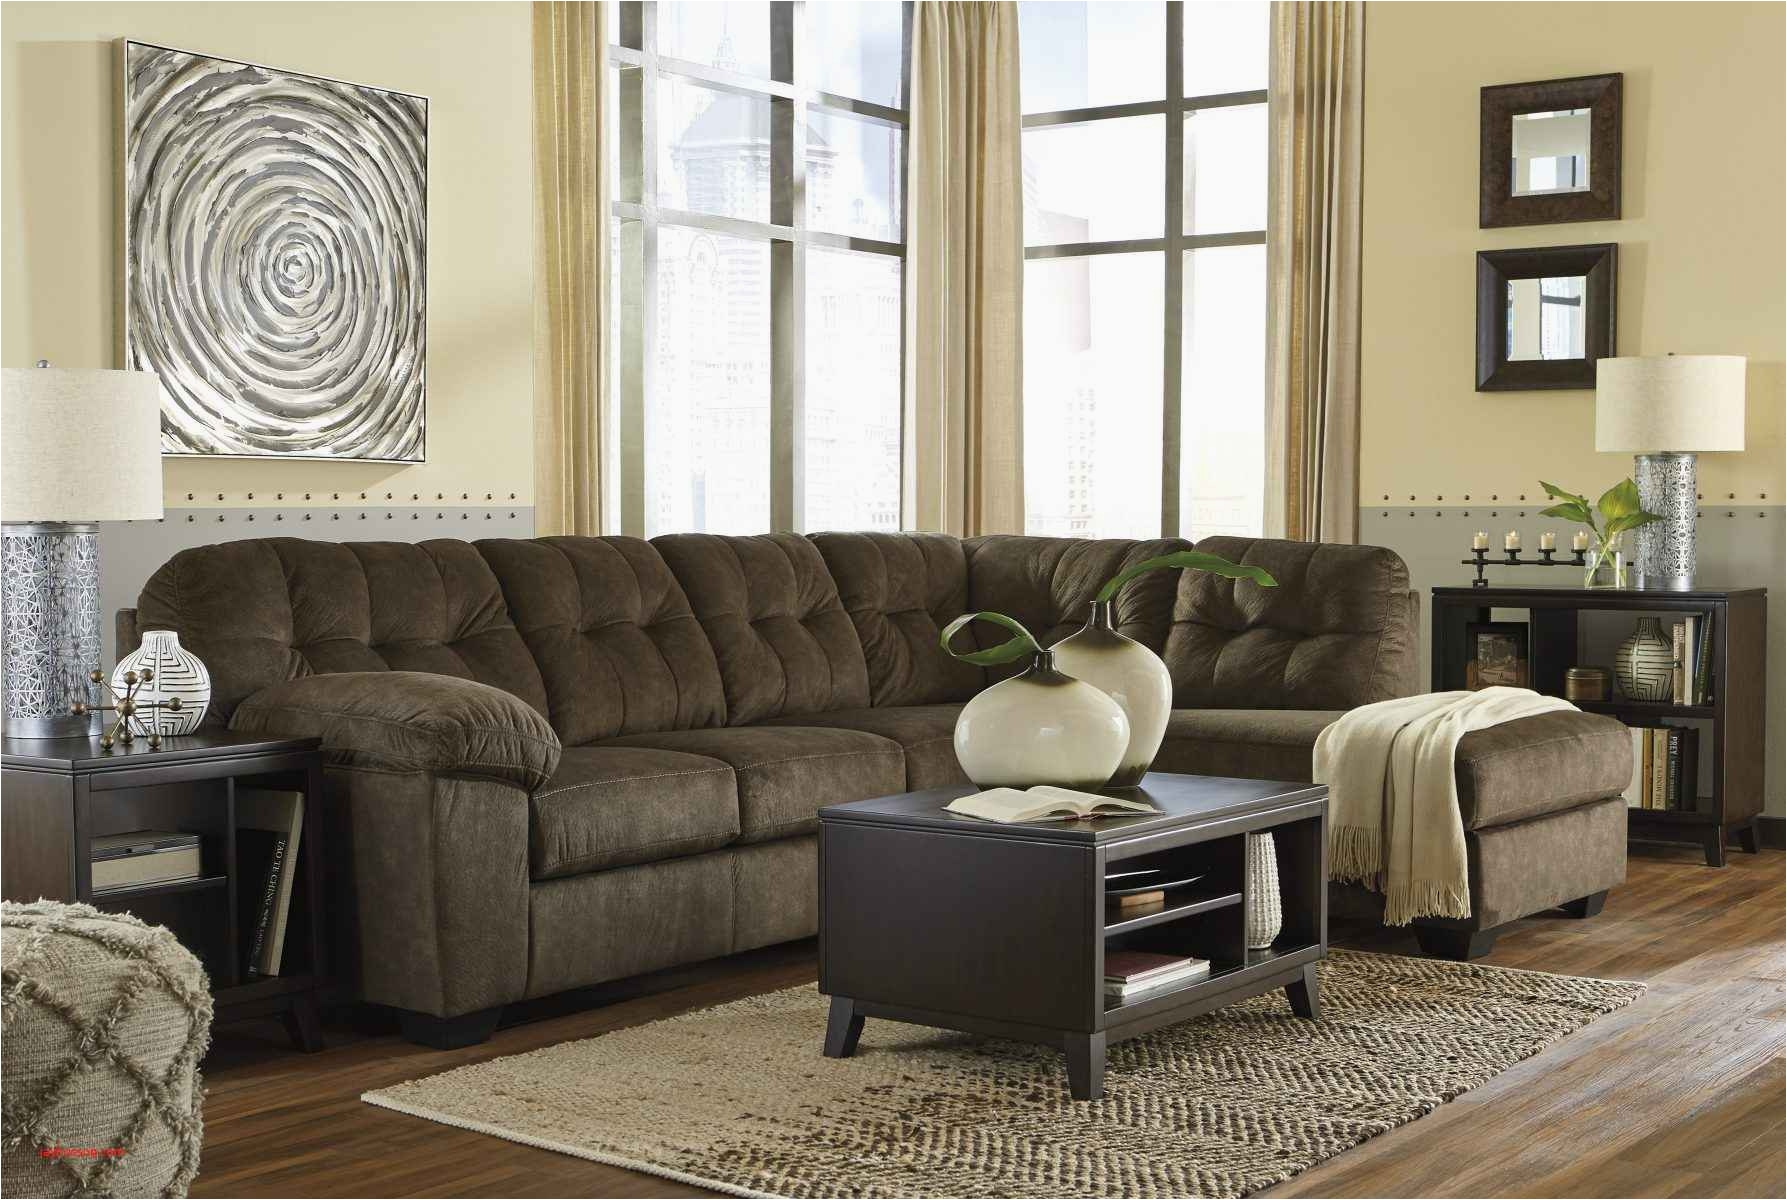 discount furniture tyler tx fresh nowadays furniture store in boardman ohio elegant gallery of 50 awesome